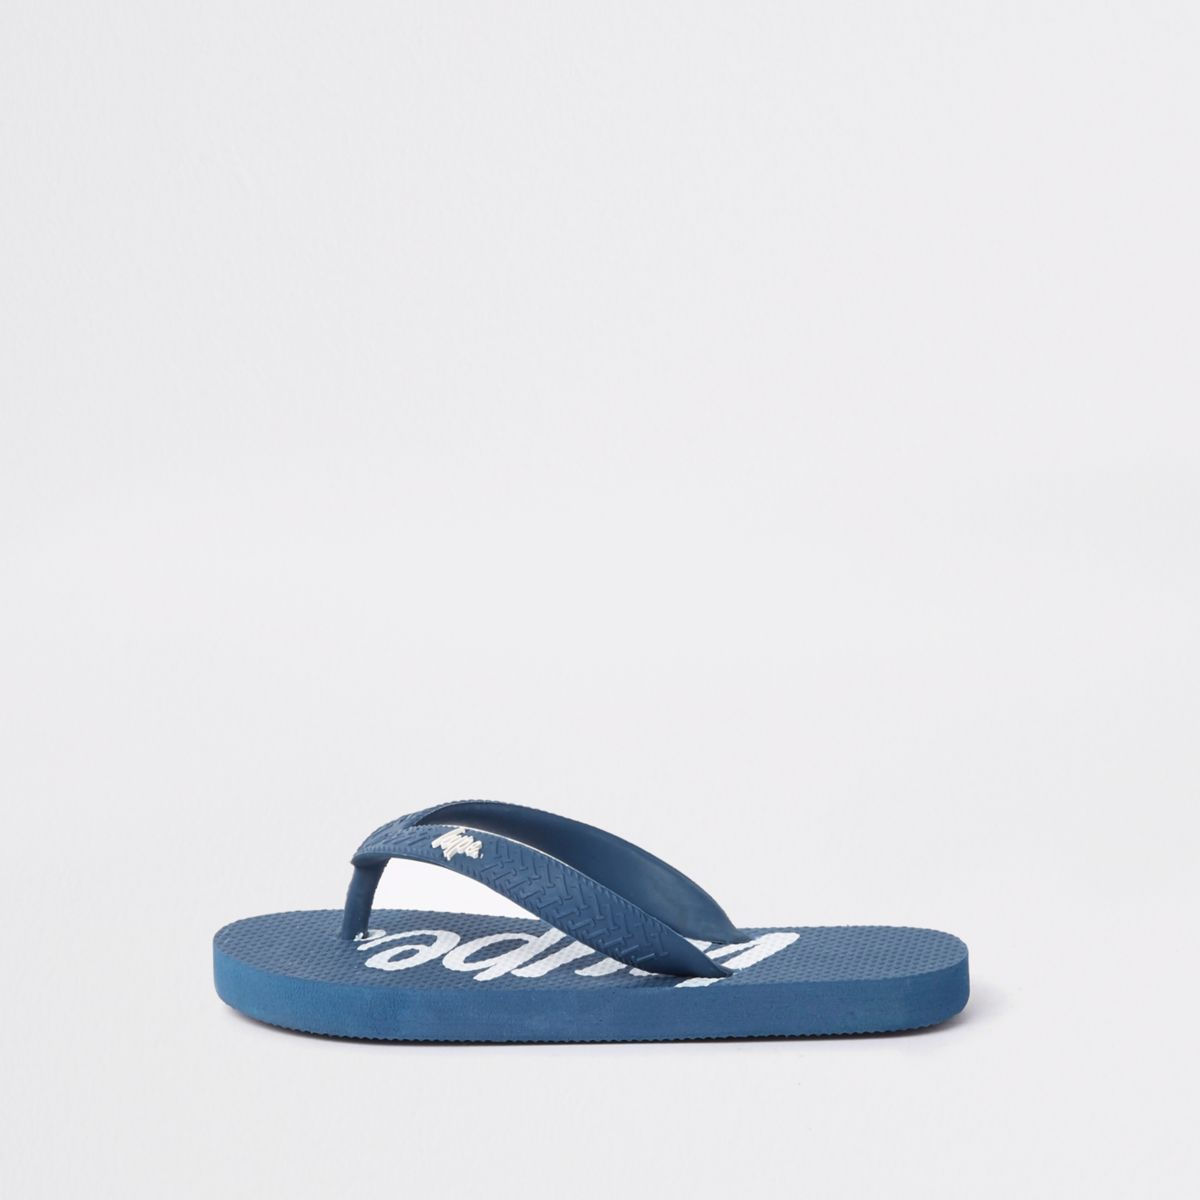 Boys Hype navy flip flops